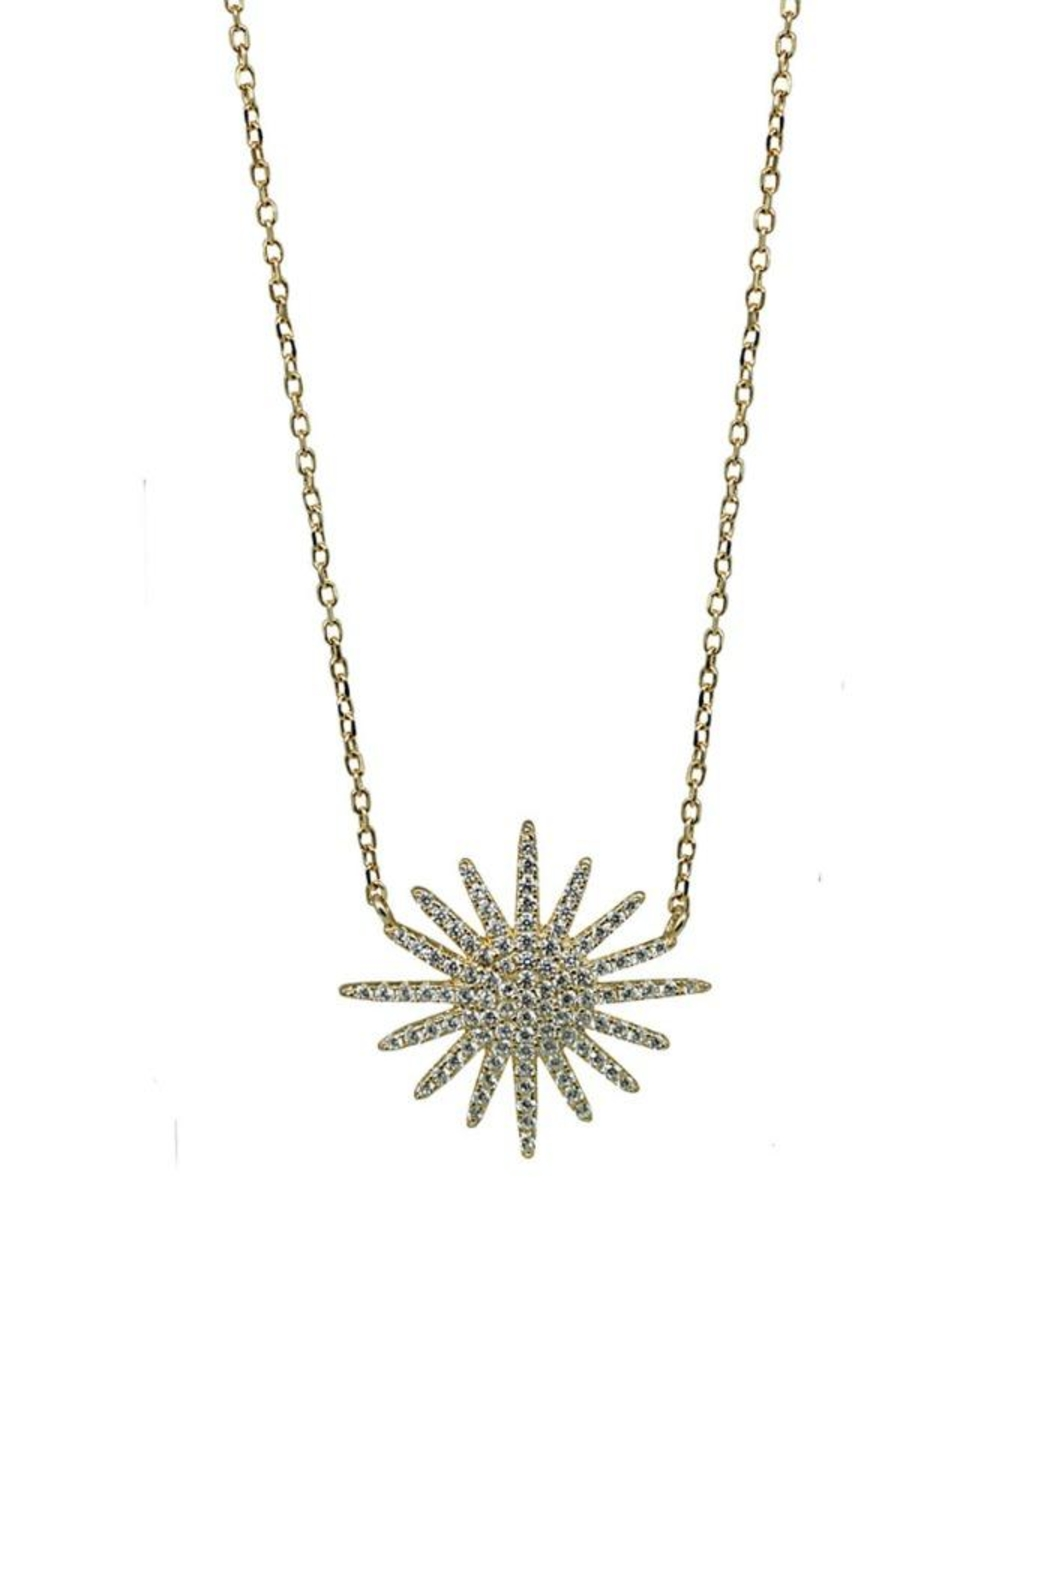 Jaimie Nicole Gold Starburst Necklace - Main Image